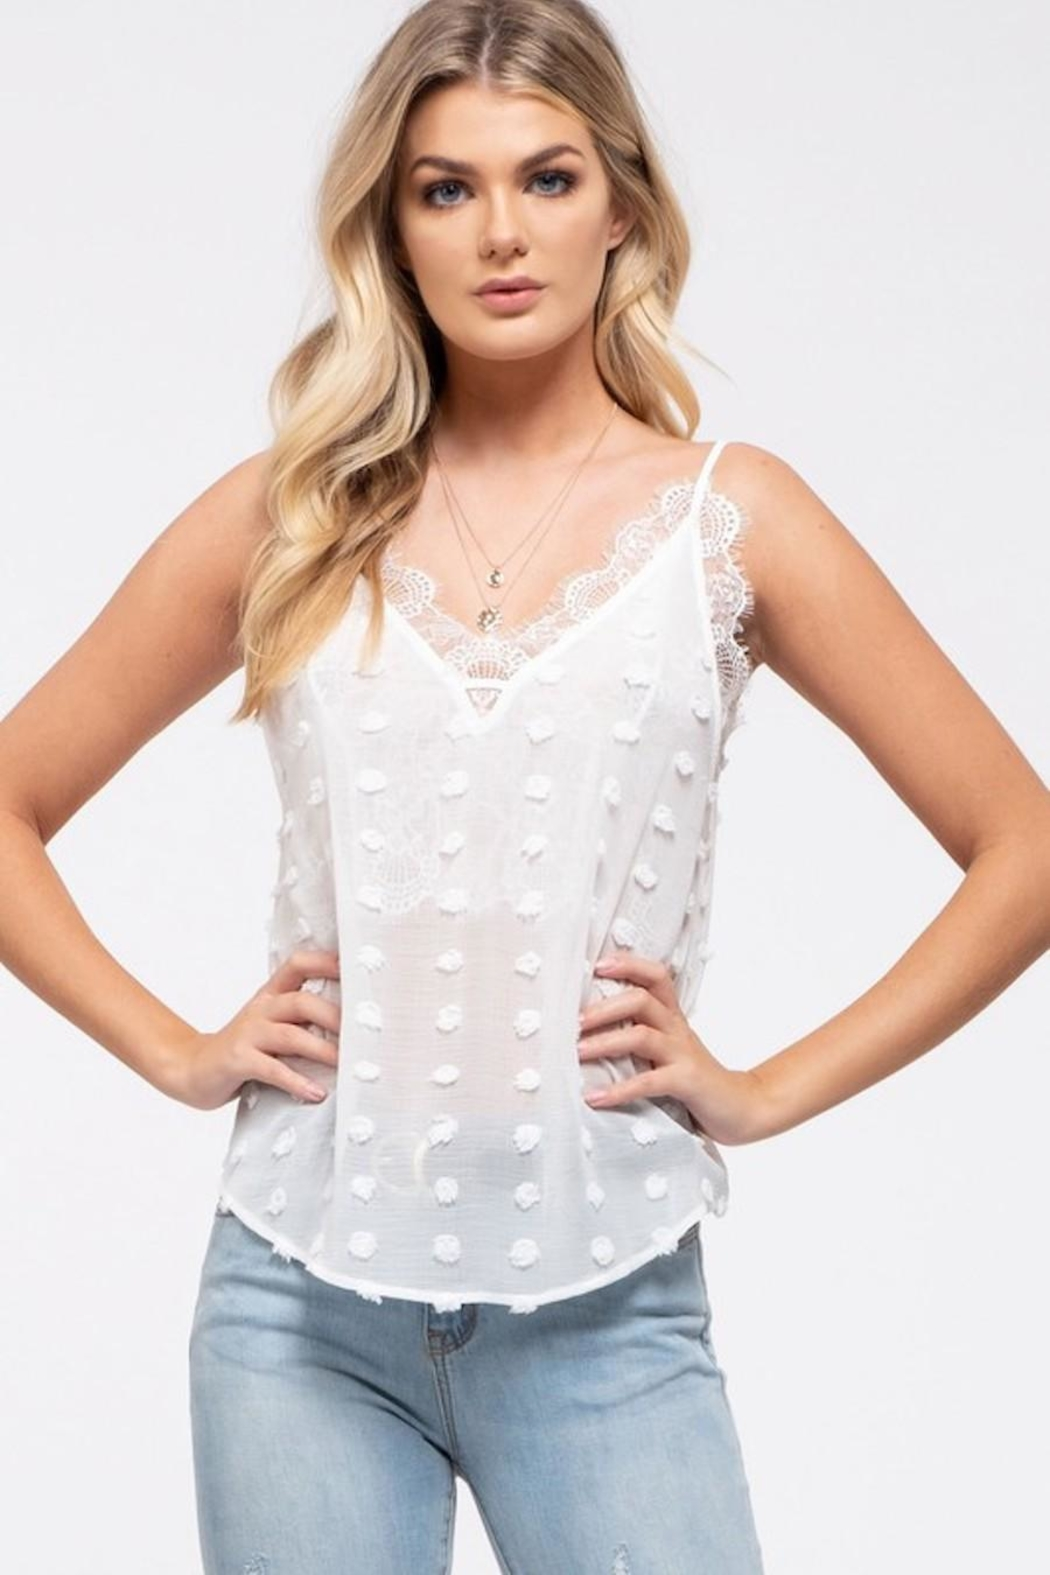 E & M Swiss Dot Lace Cami In White - Front Full Image